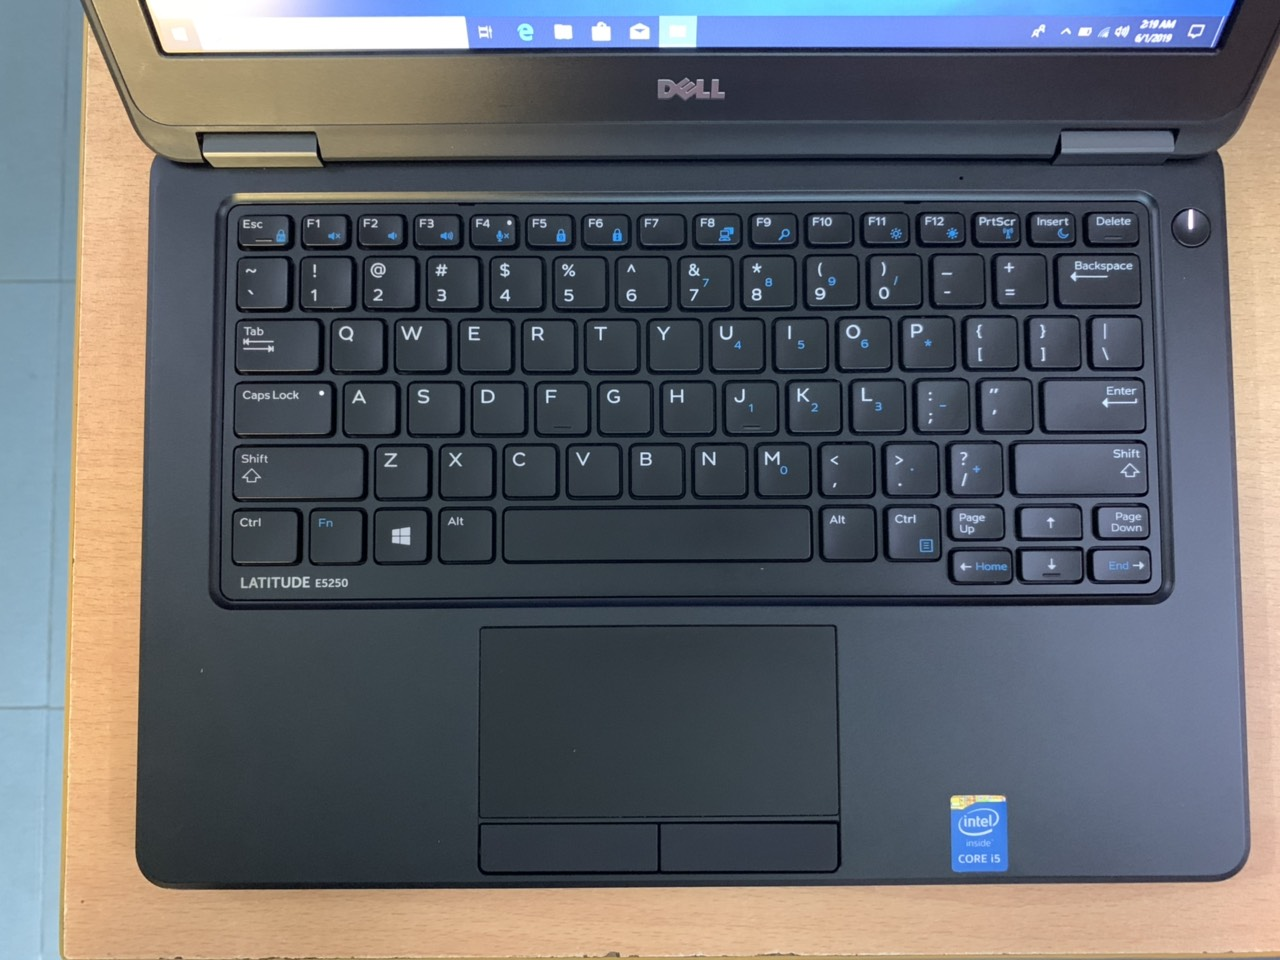 DELL LATITUDE 5250 I5 5300U 4GB 128GB SSD